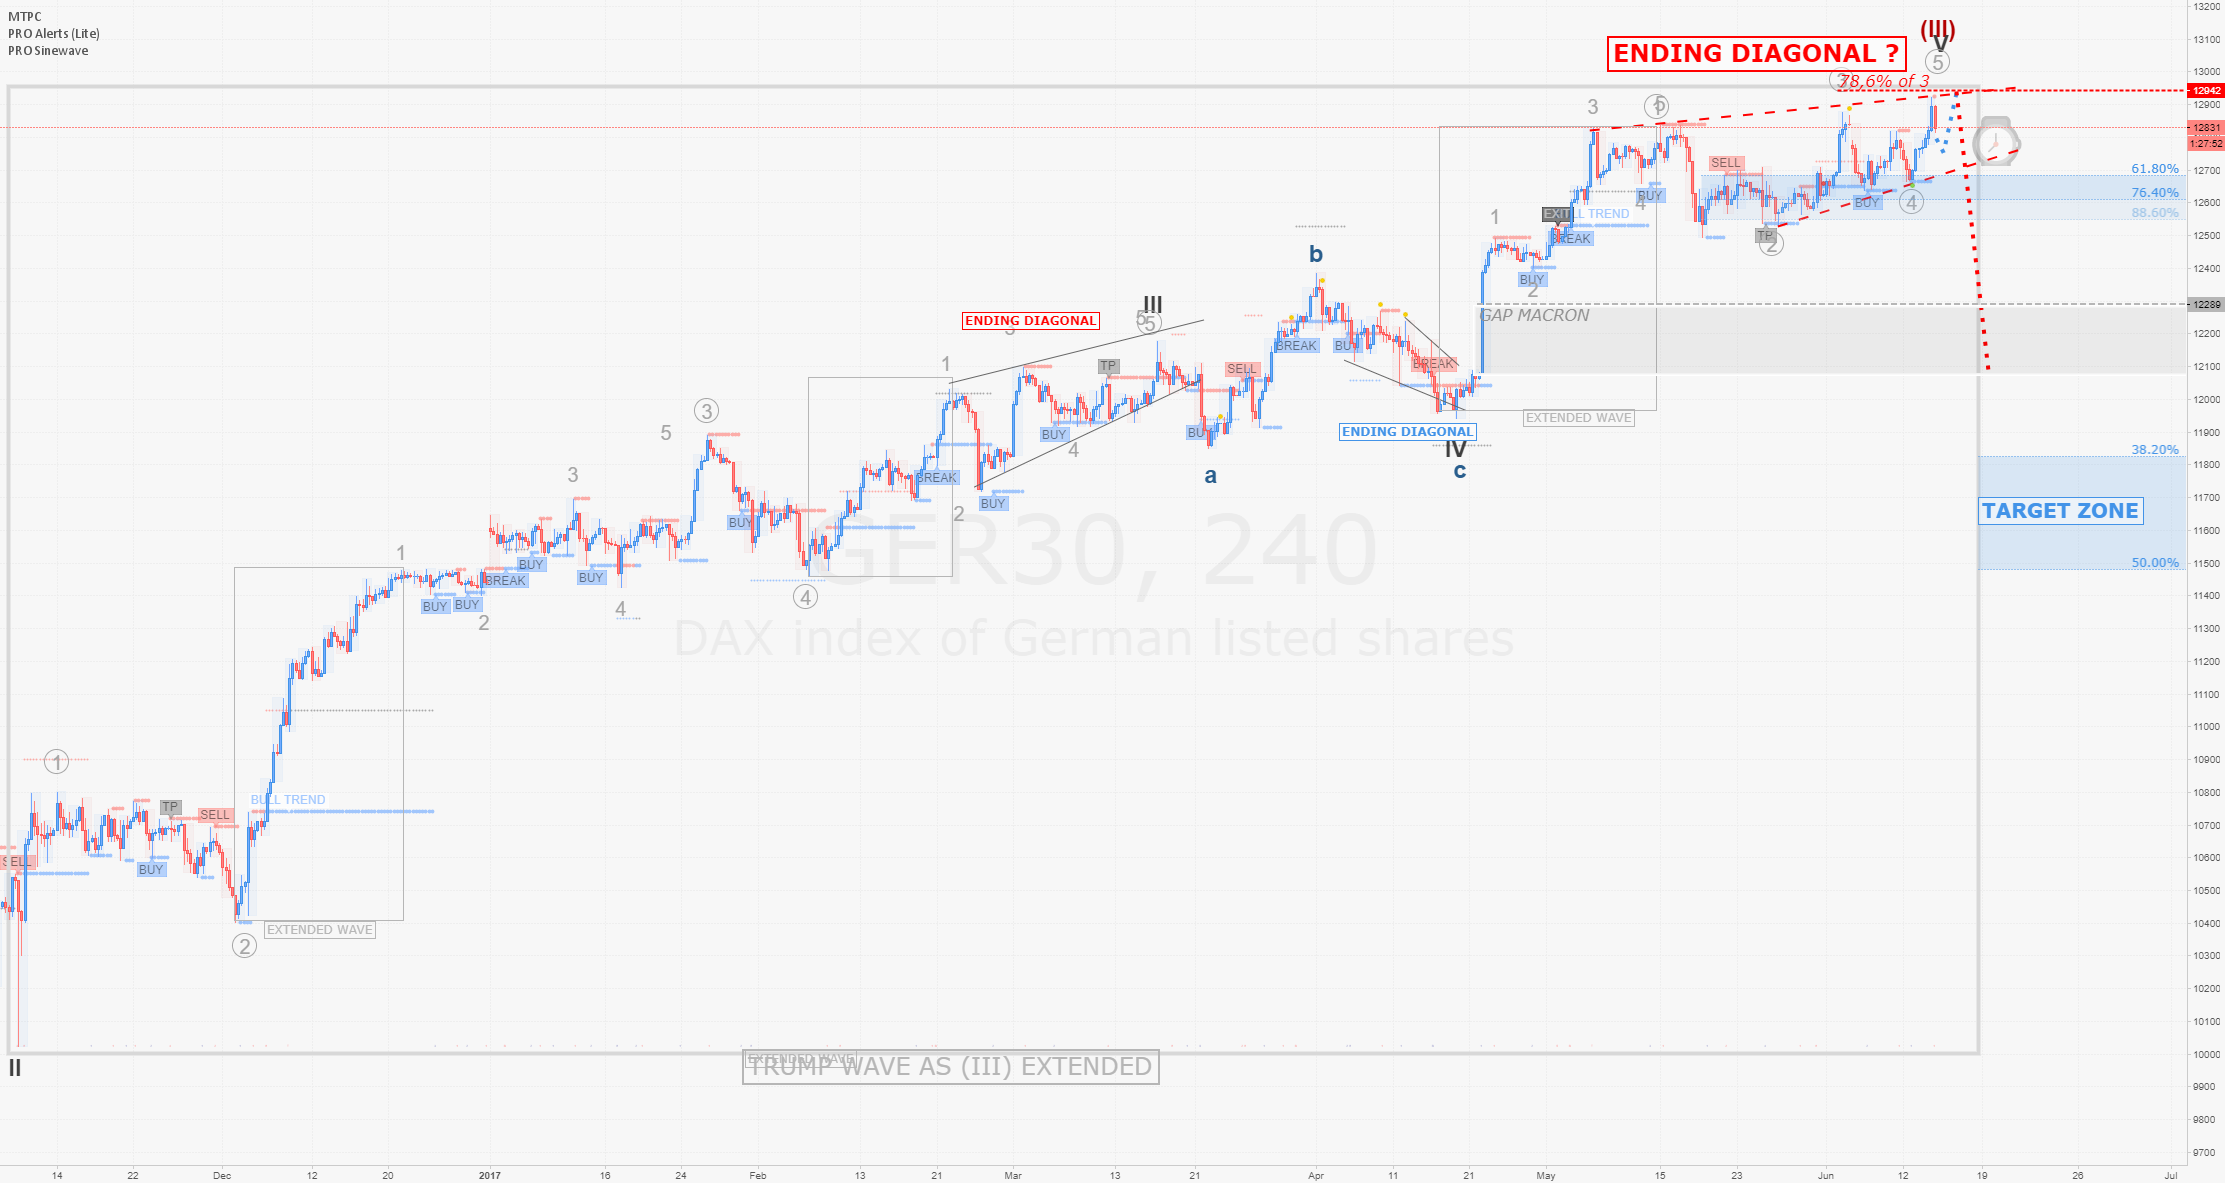 DAX / H4 : Ending Diagonal to terminate wave 5 ?